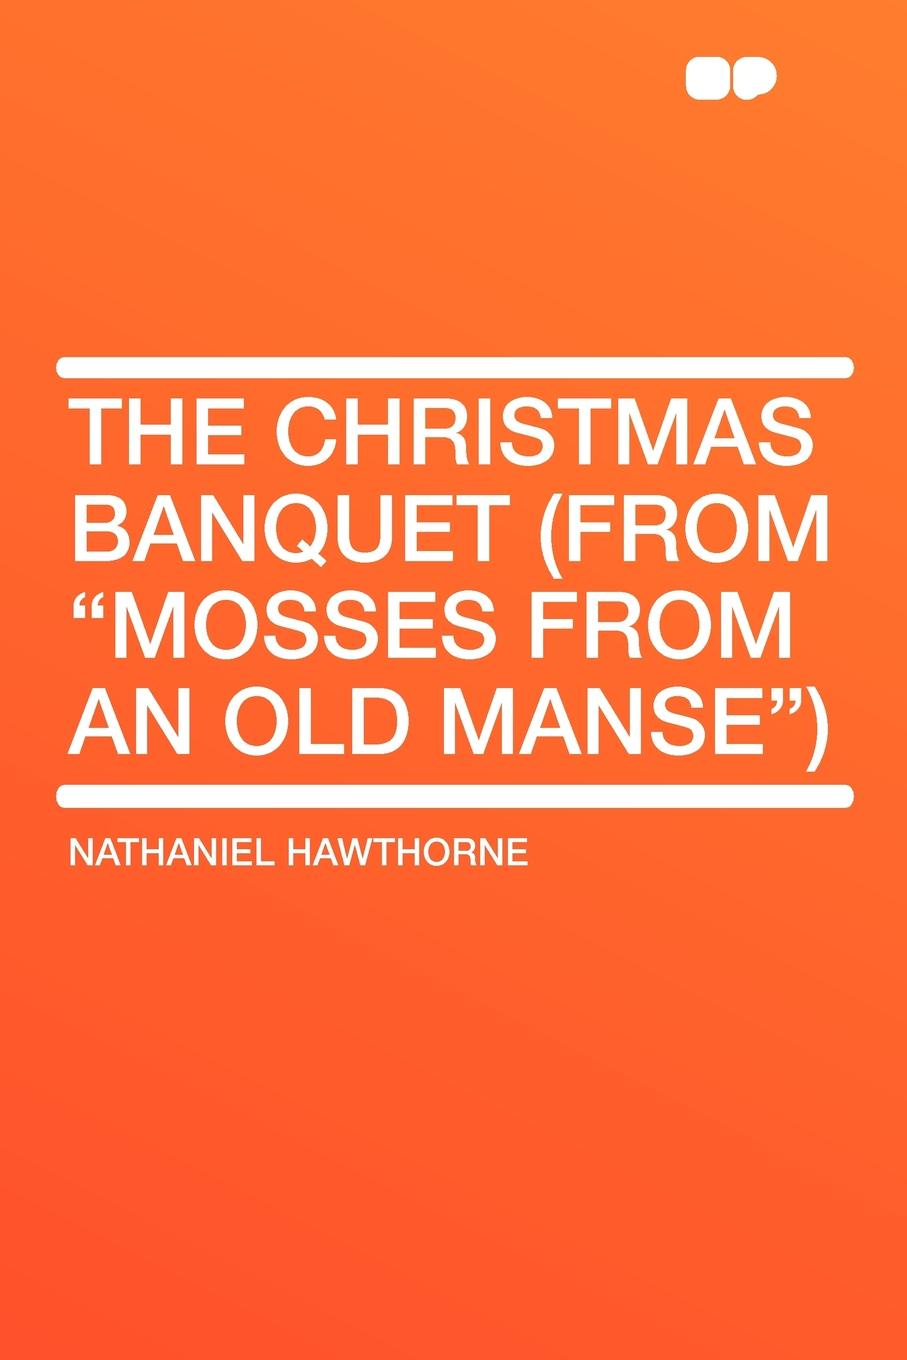 Hawthorne Nathaniel The Christmas Banquet (From Mosses from an Old Manse)